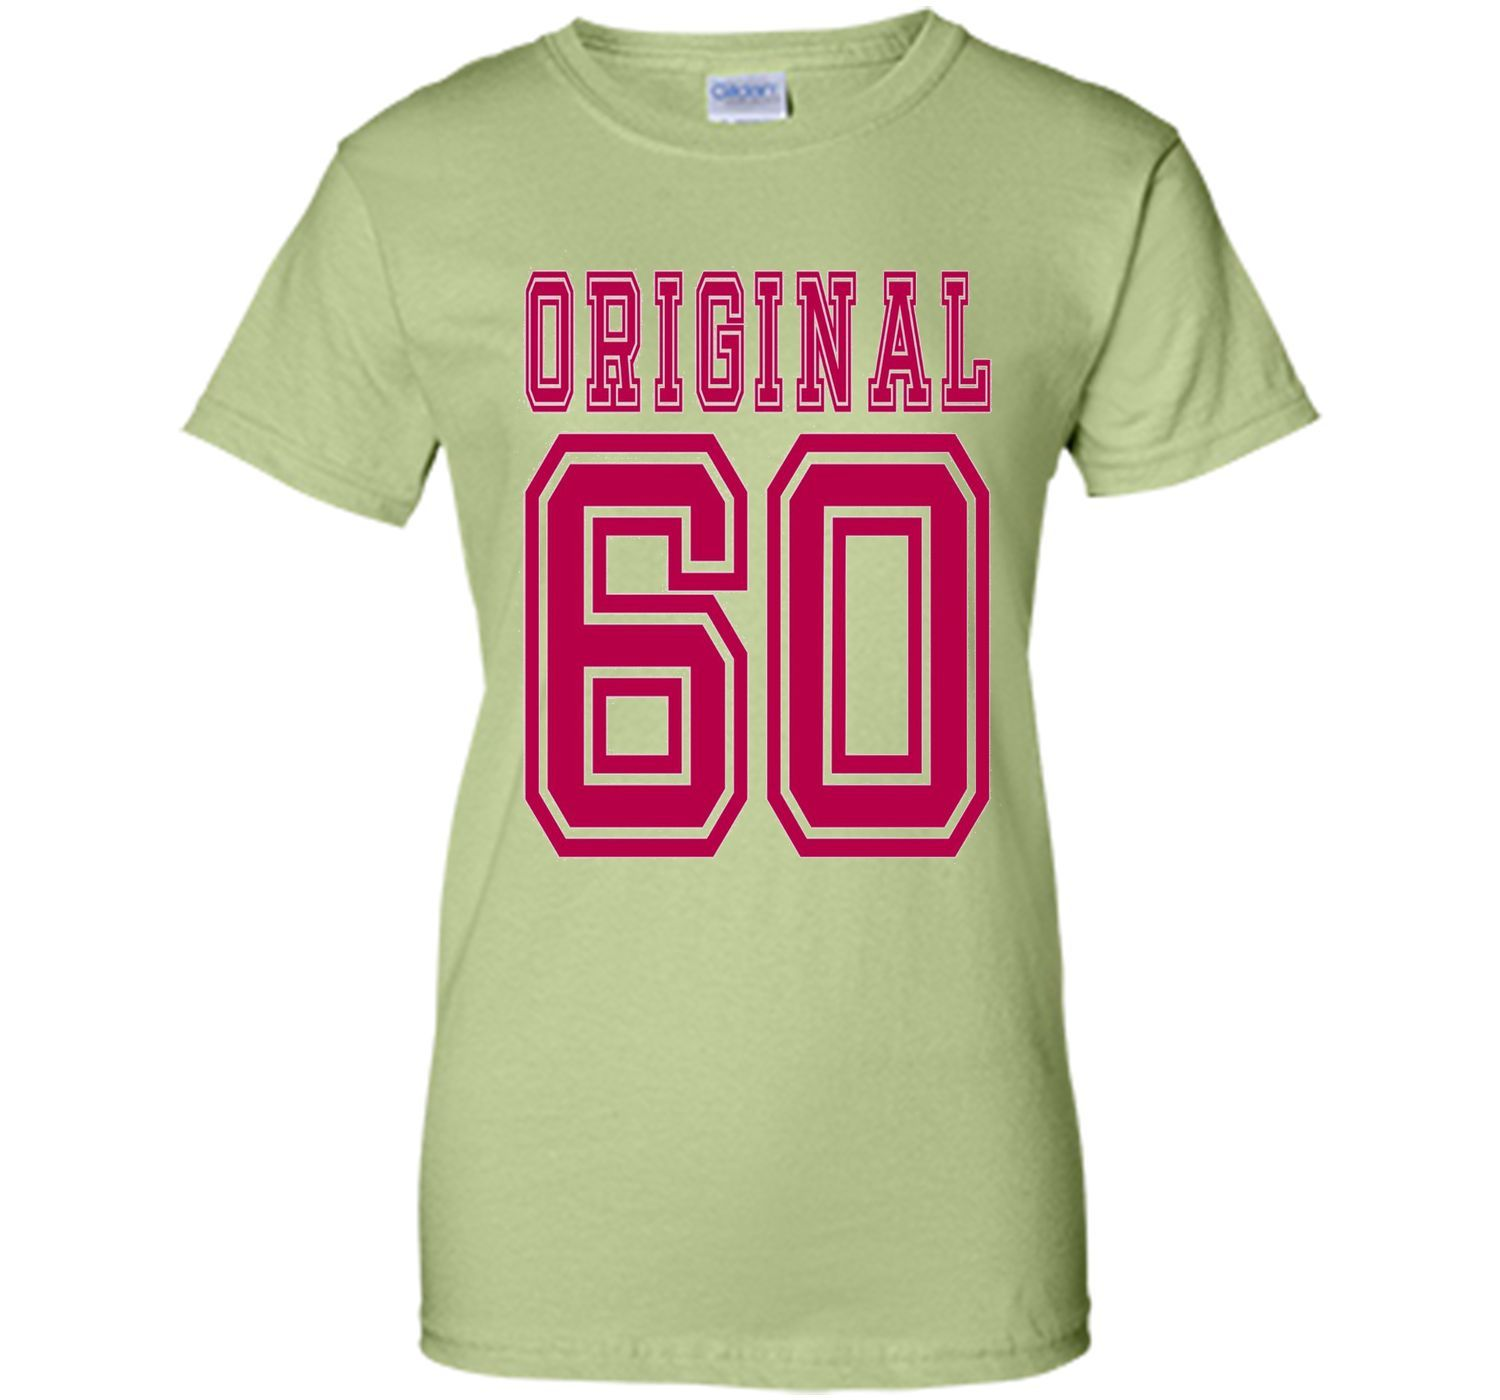 56th Birthday Gift 56 Year Old Present Idea 1960 T Shirt C